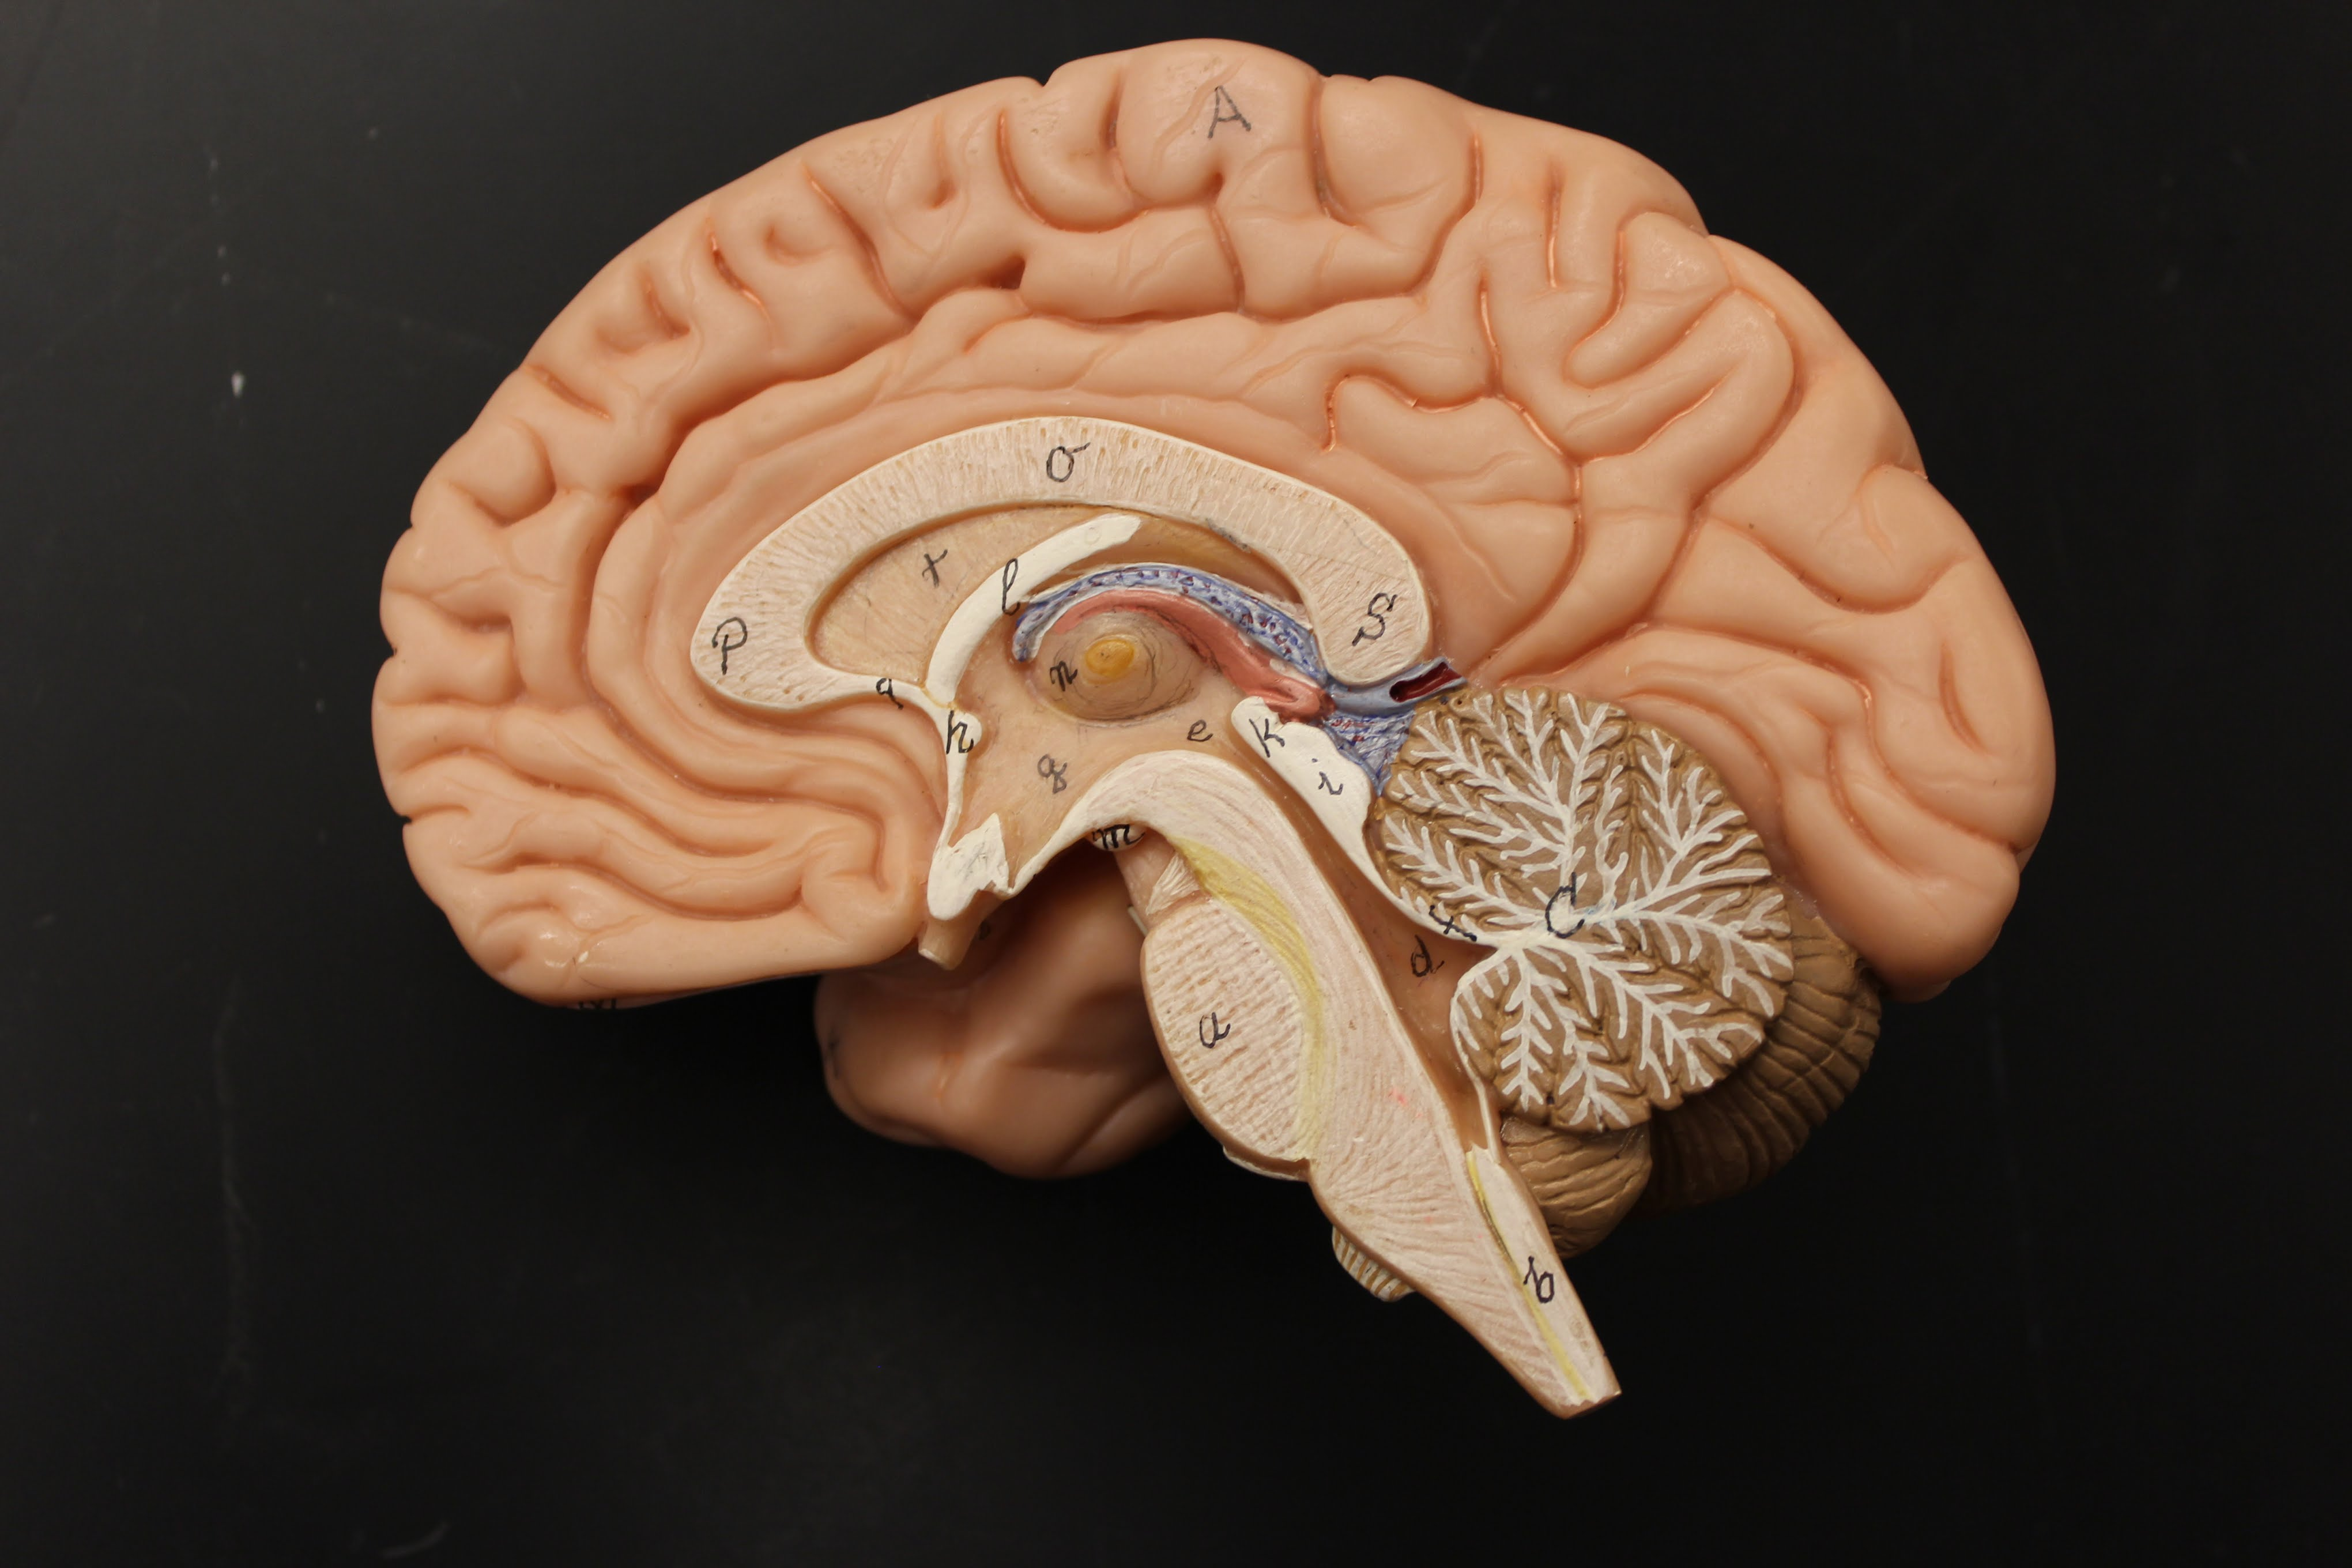 Human Brain Model - Florida Southern College Human A&P Nervous System